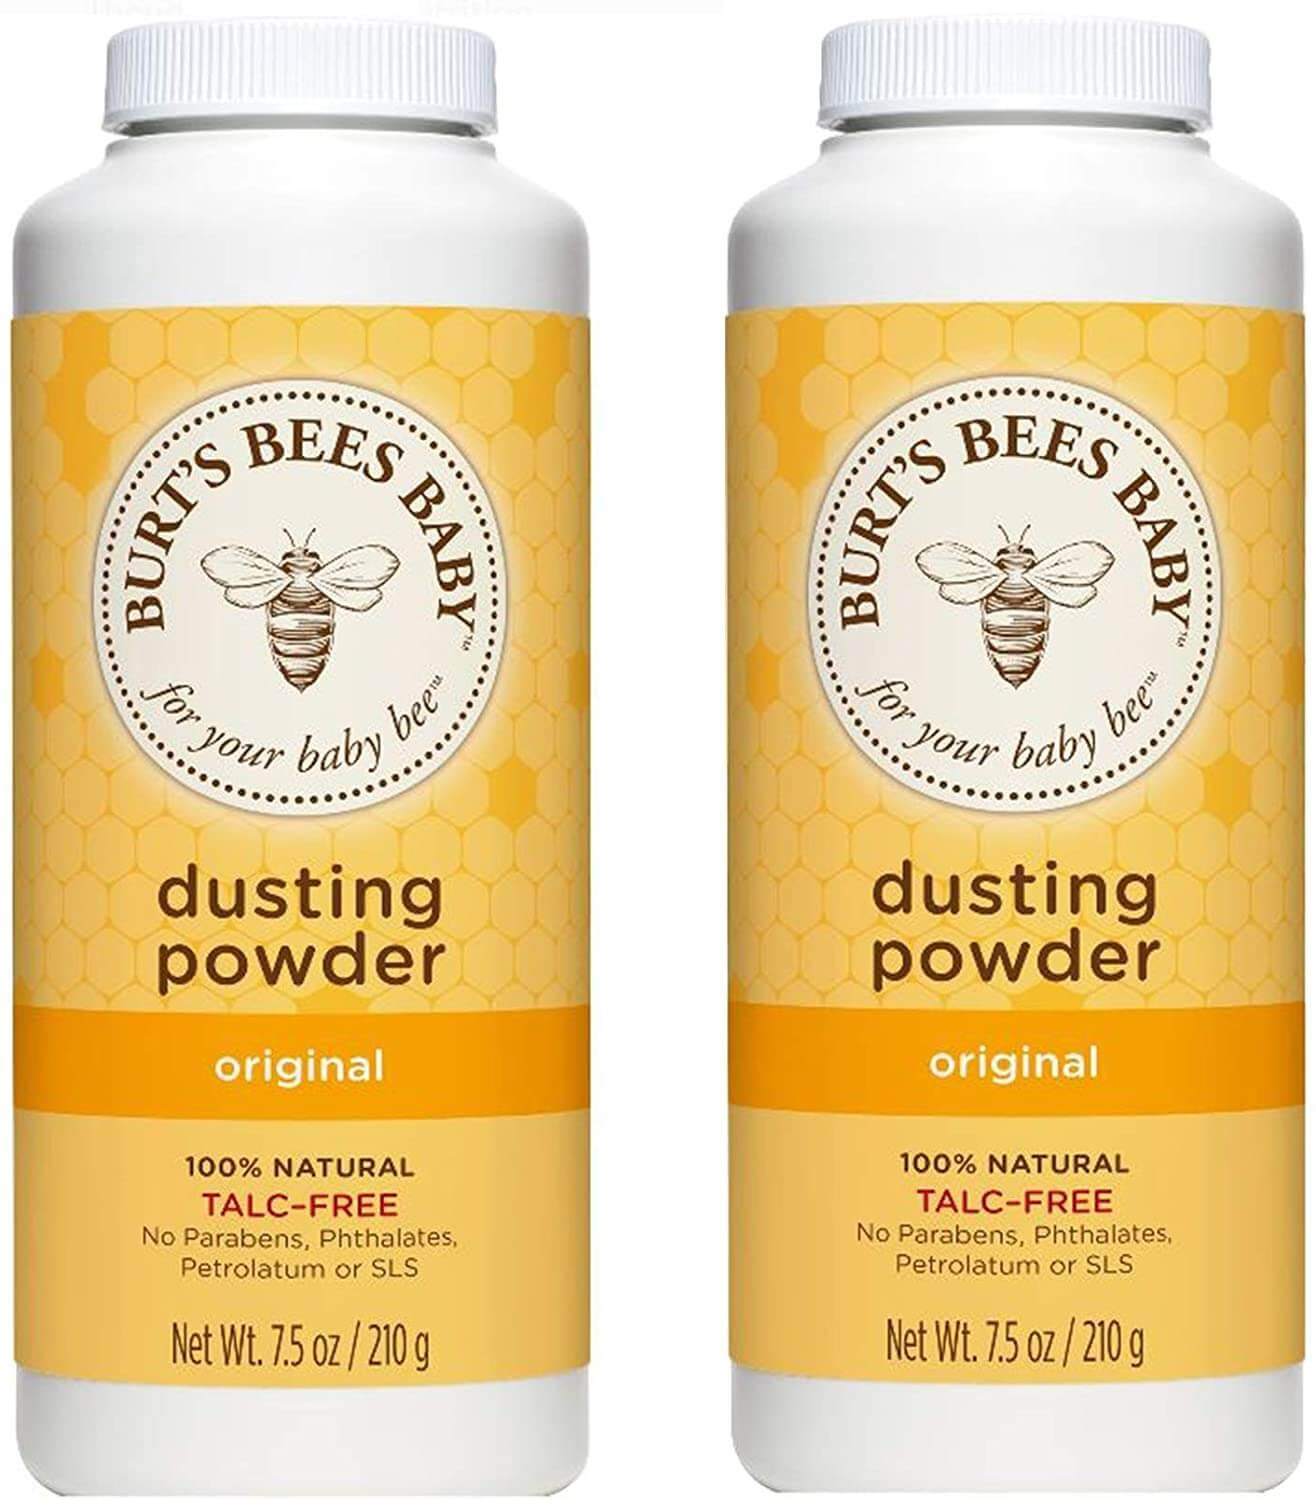 Burt's Bees Baby Natural Dusting Powder